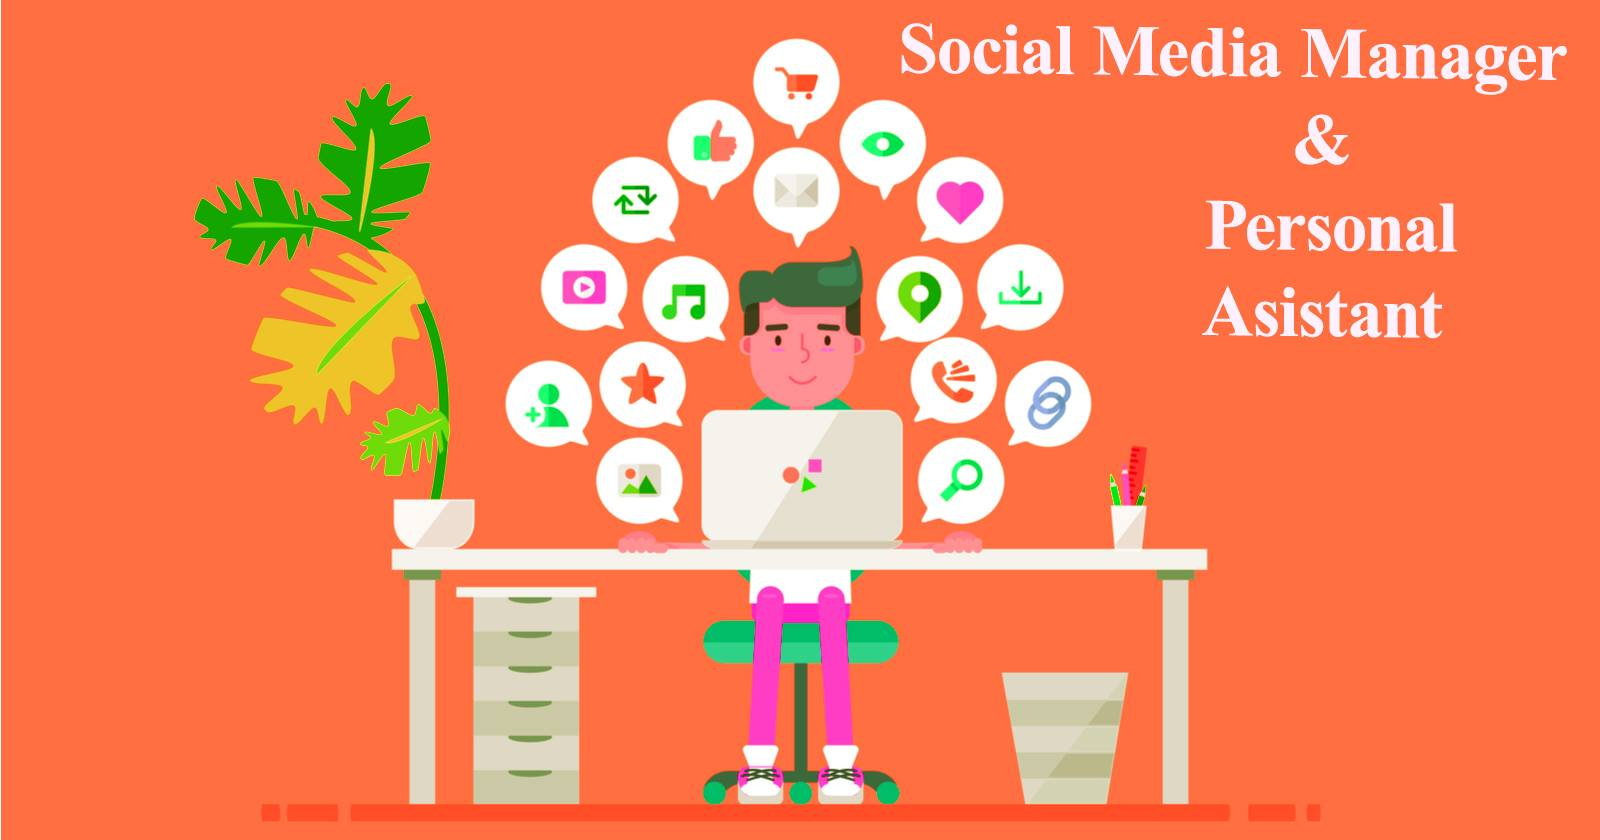 I will work for your social media manager and personal assistant